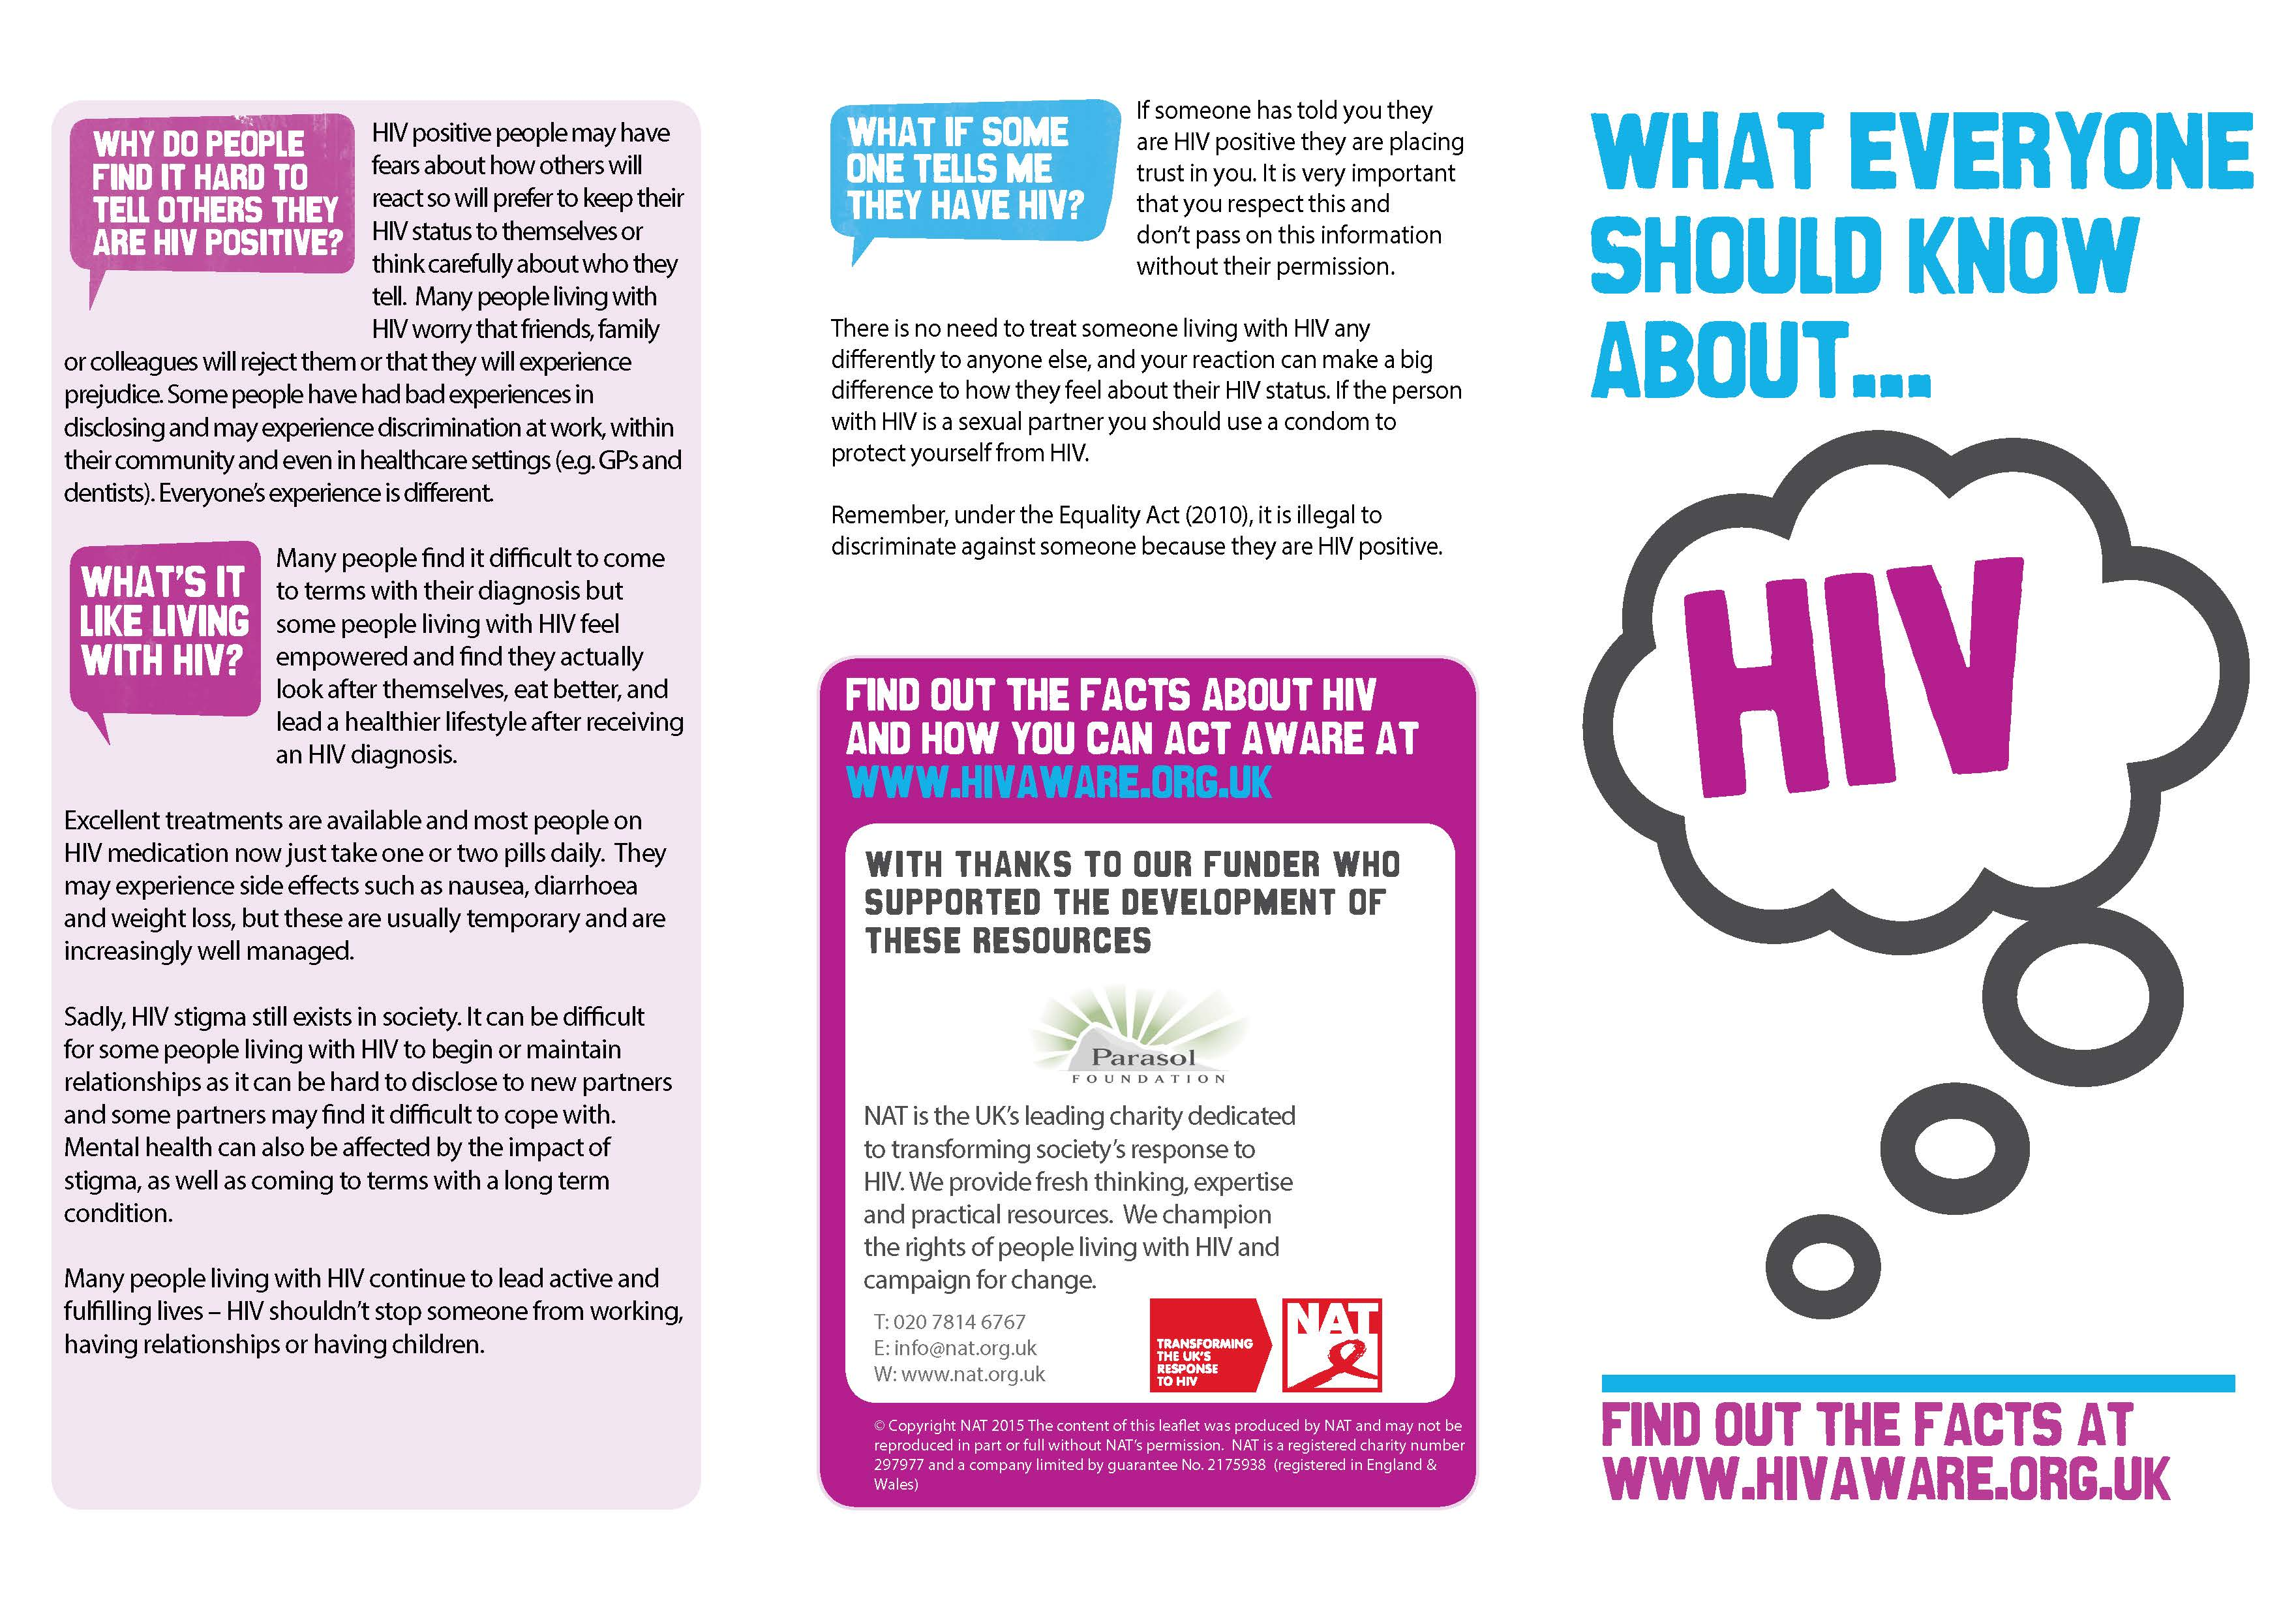 What Everyone Should Know About HIV